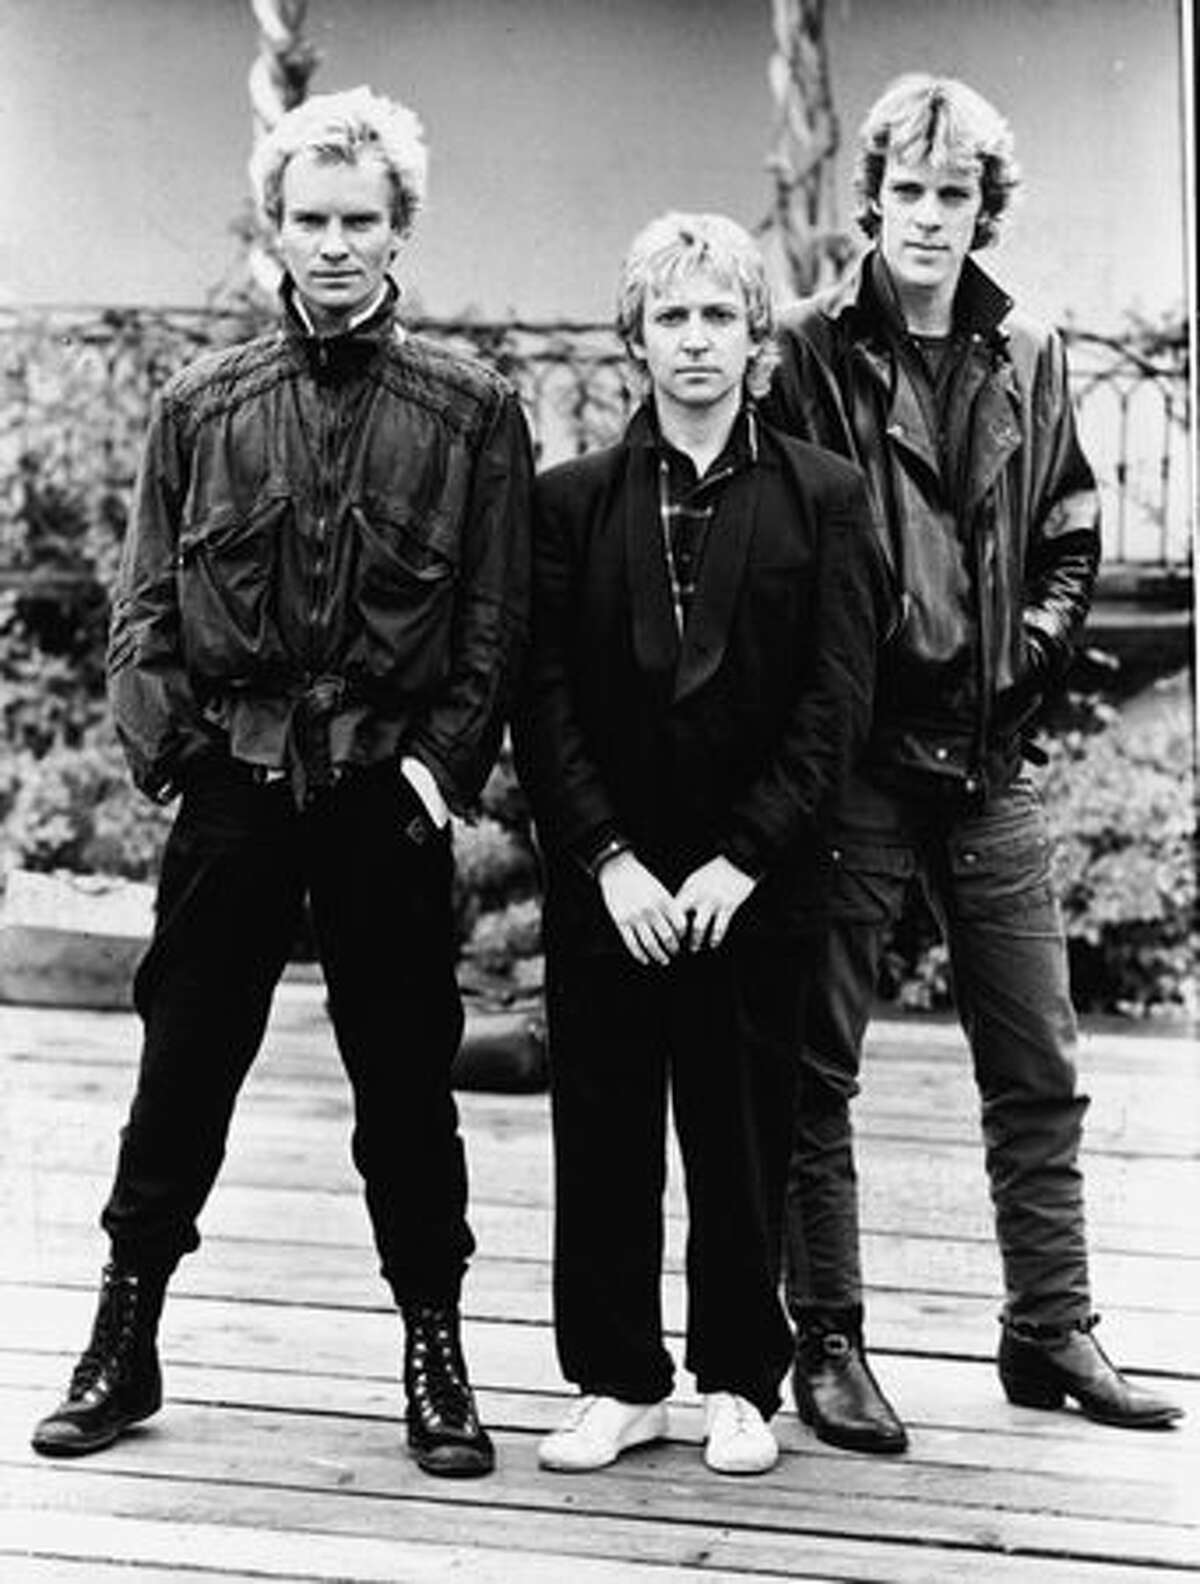 A promotional portrait of the British rock band The Police (from left): Sting, Andy Summers, and Stewart Copeland, circa 1980.